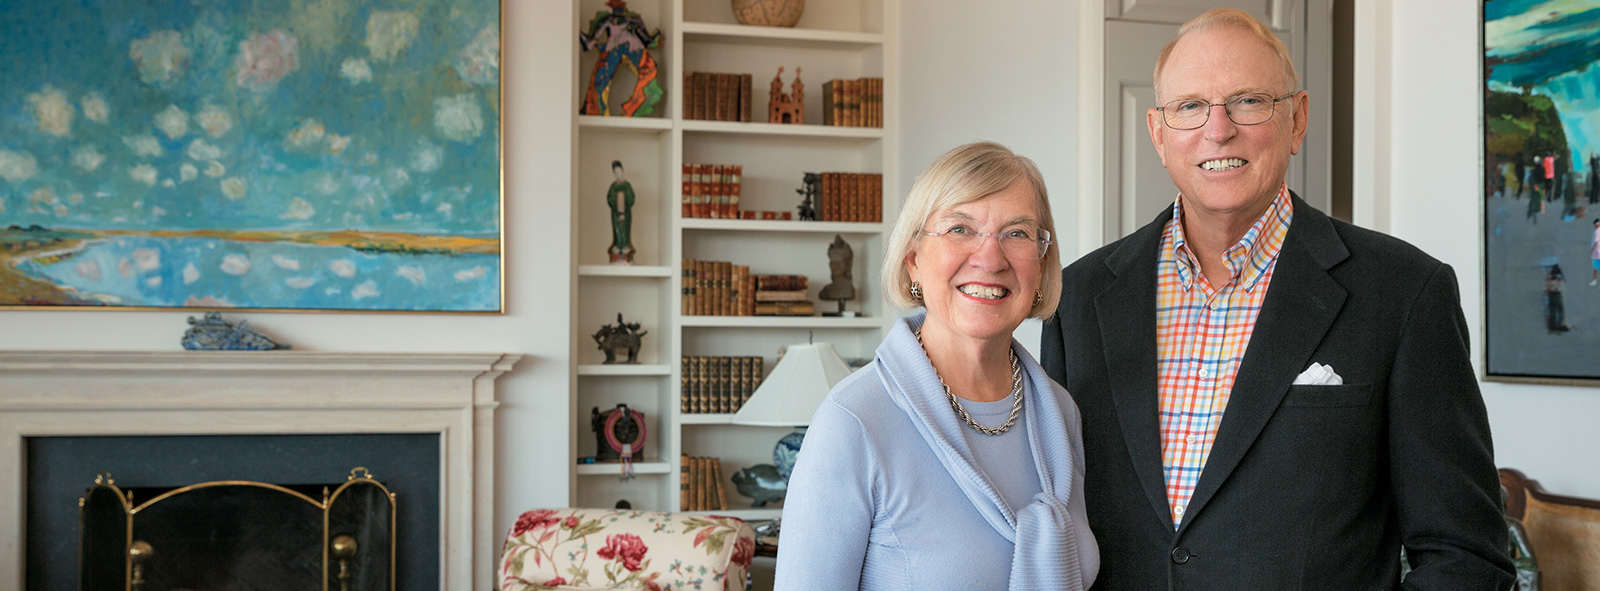 Image of First Republic Philanthropists / Volunteers client(s) Karin and David Chamberlain